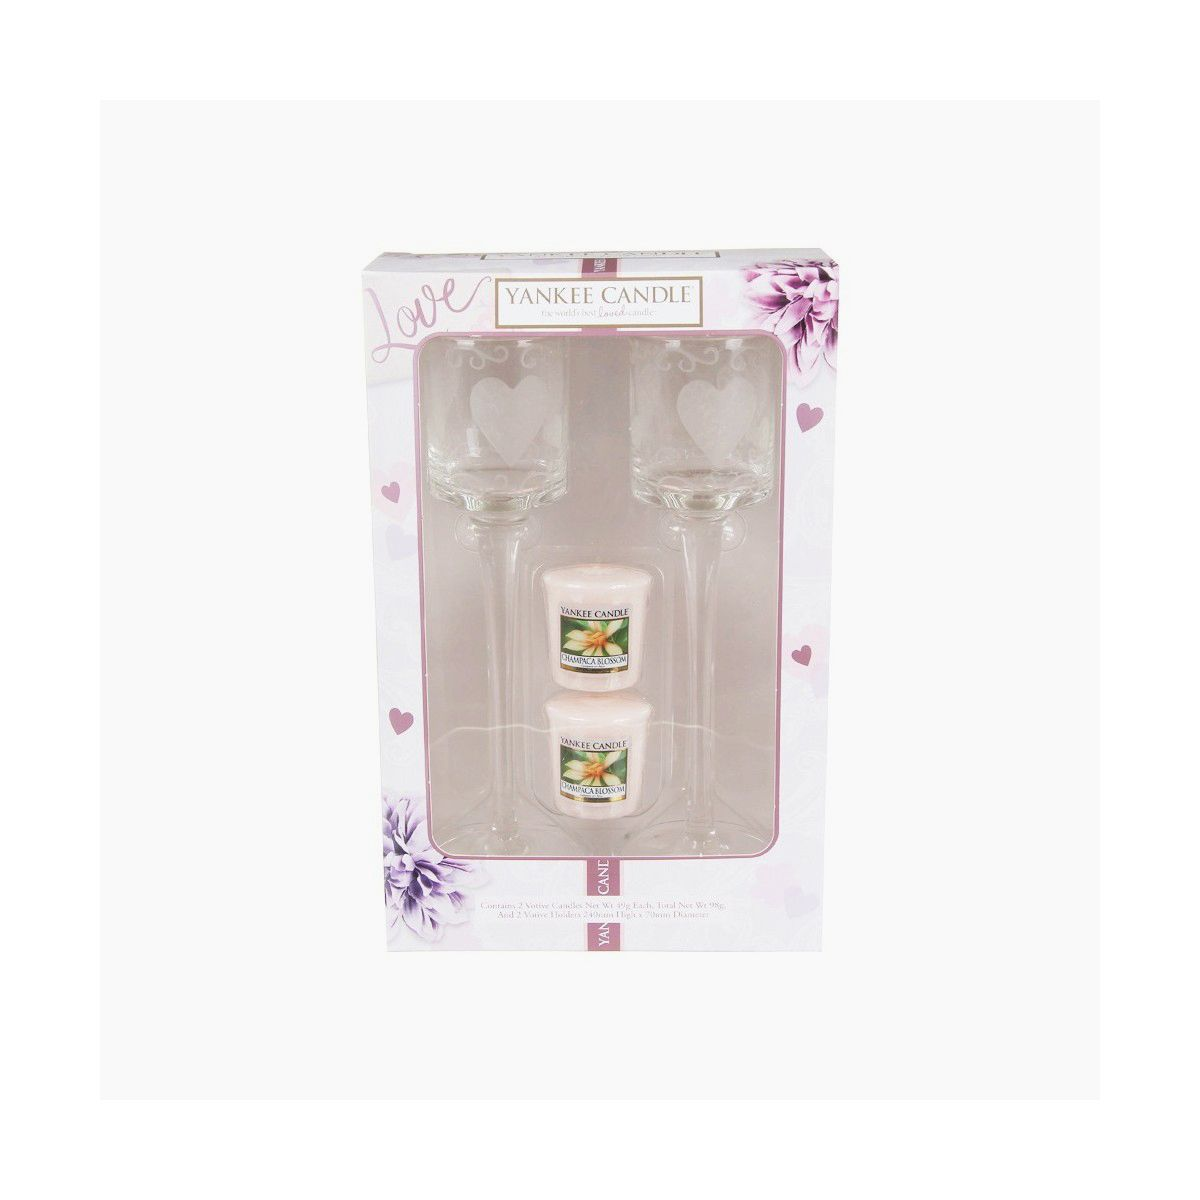 Yankee Candle Coffret Cadeau Mariage